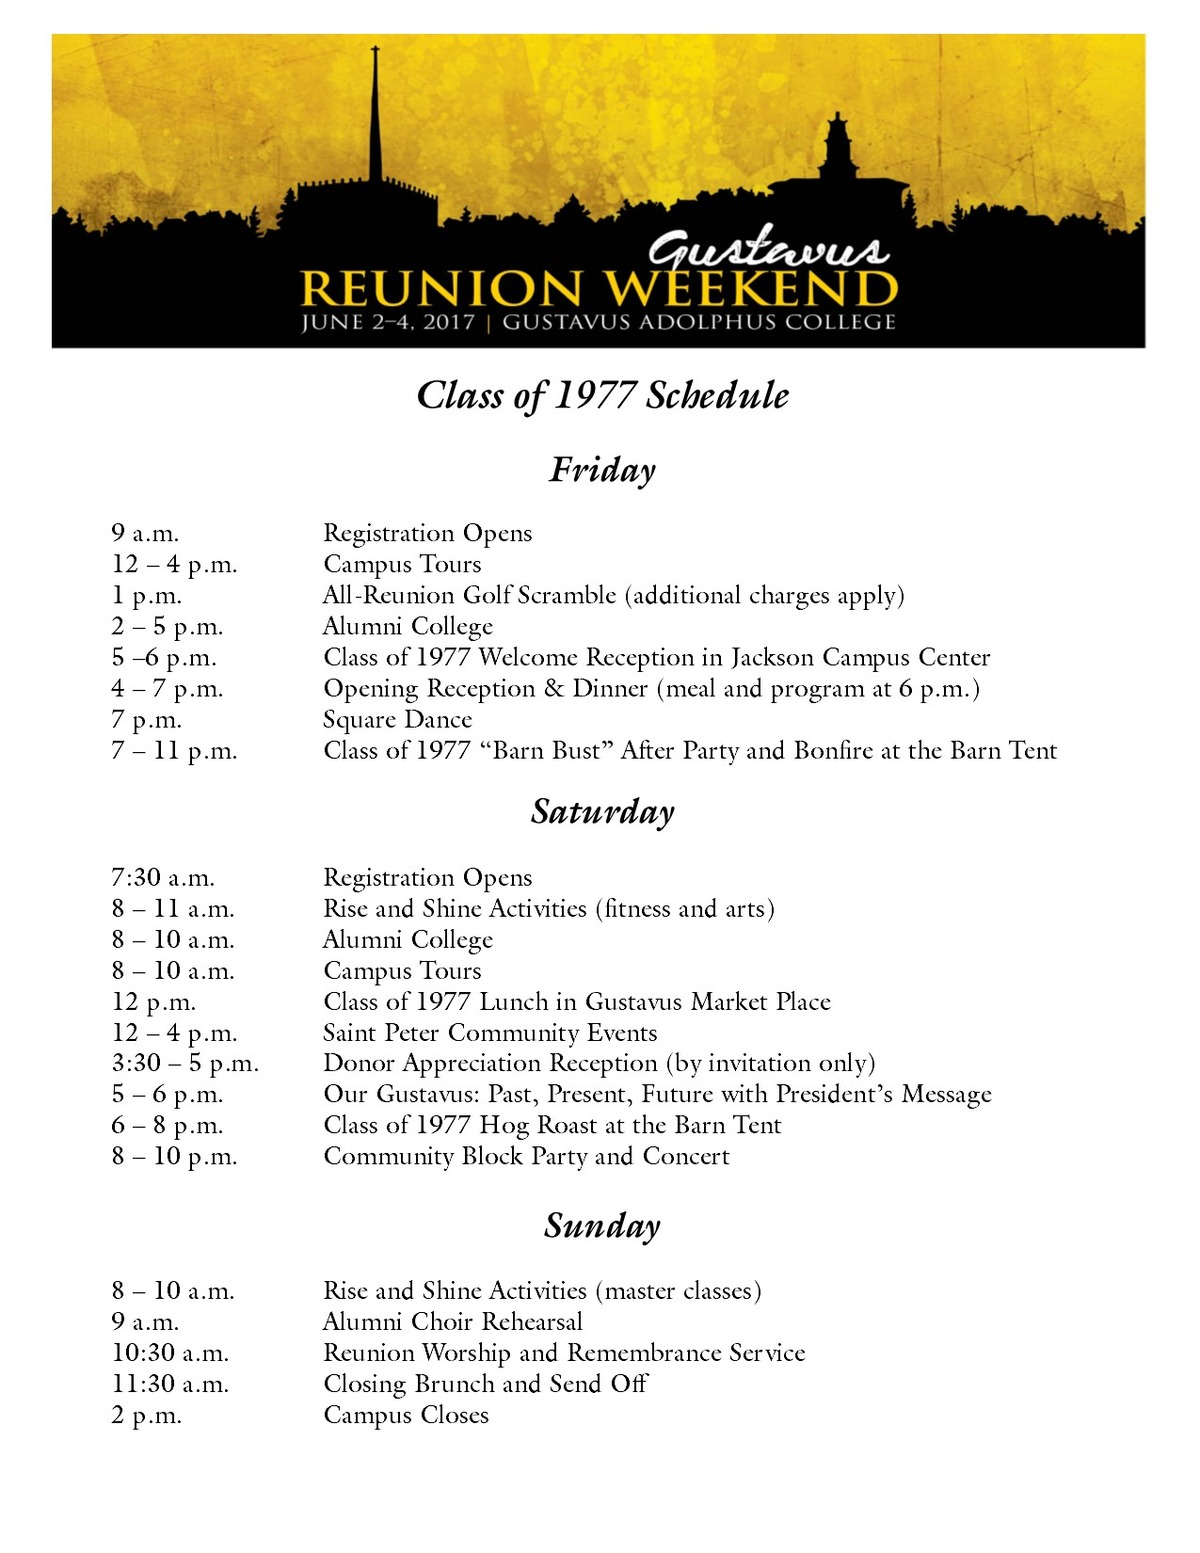 Class of 1977 Reunion Weekend Schedule